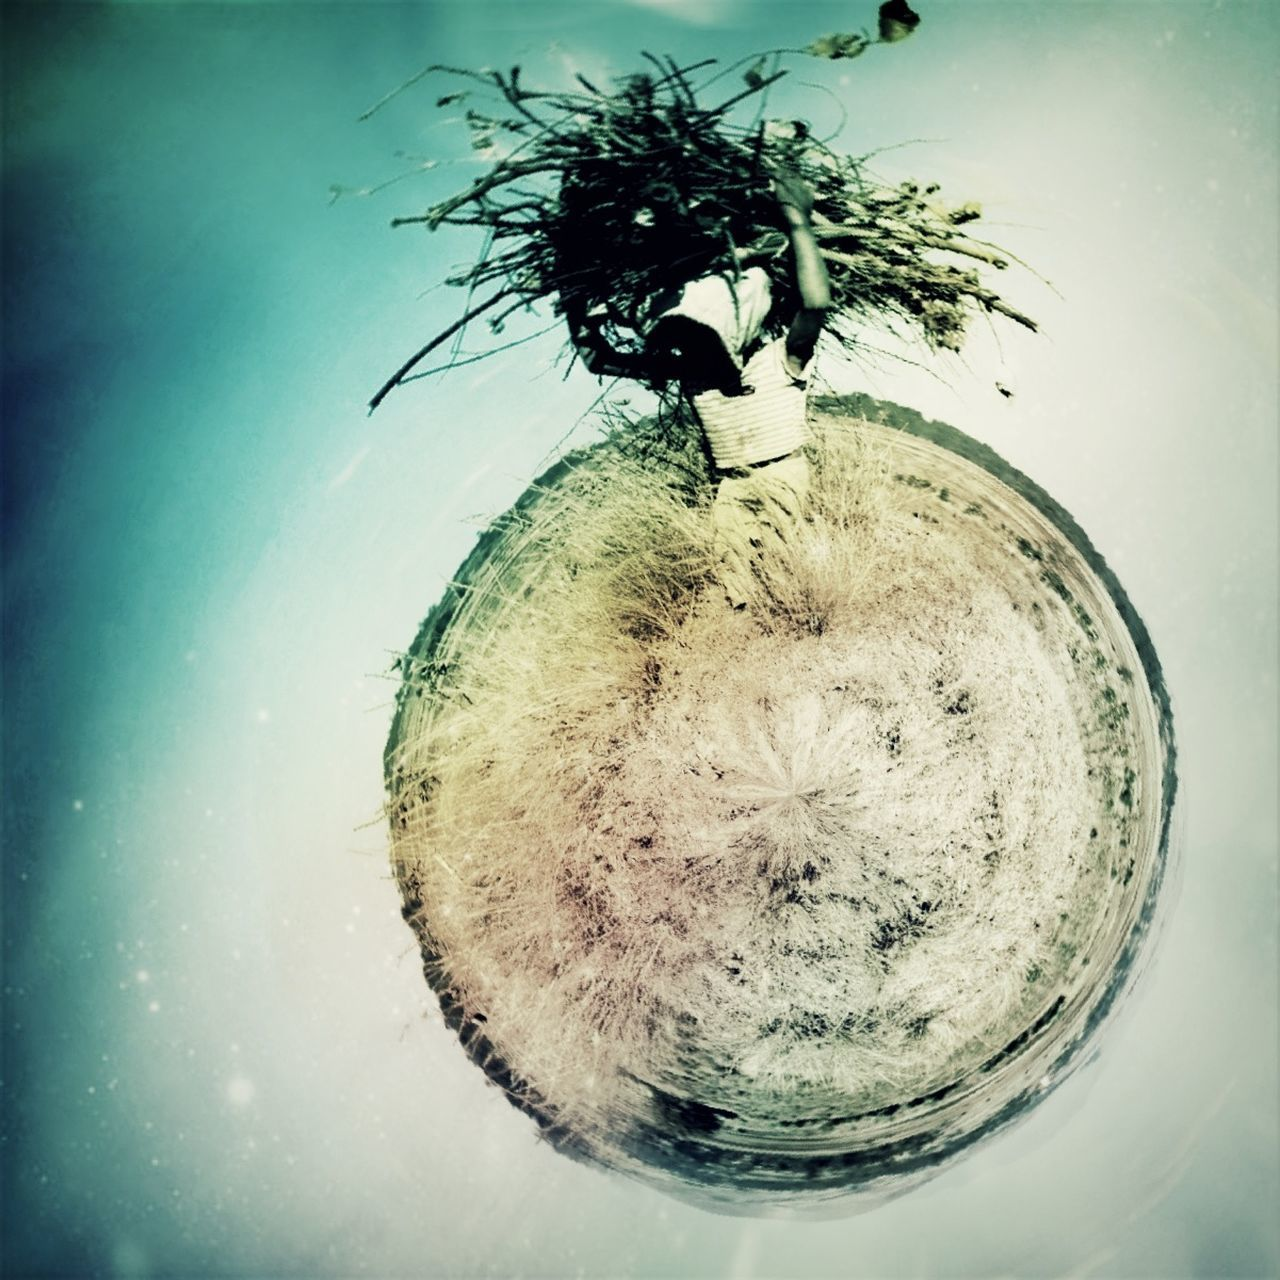 Harvest Moon Canon EOS 550D Day Geometric Shape Harvest Madagascar  Quadratisch Reise Round Snapseed Square Tadaa Tinyplanets Travel